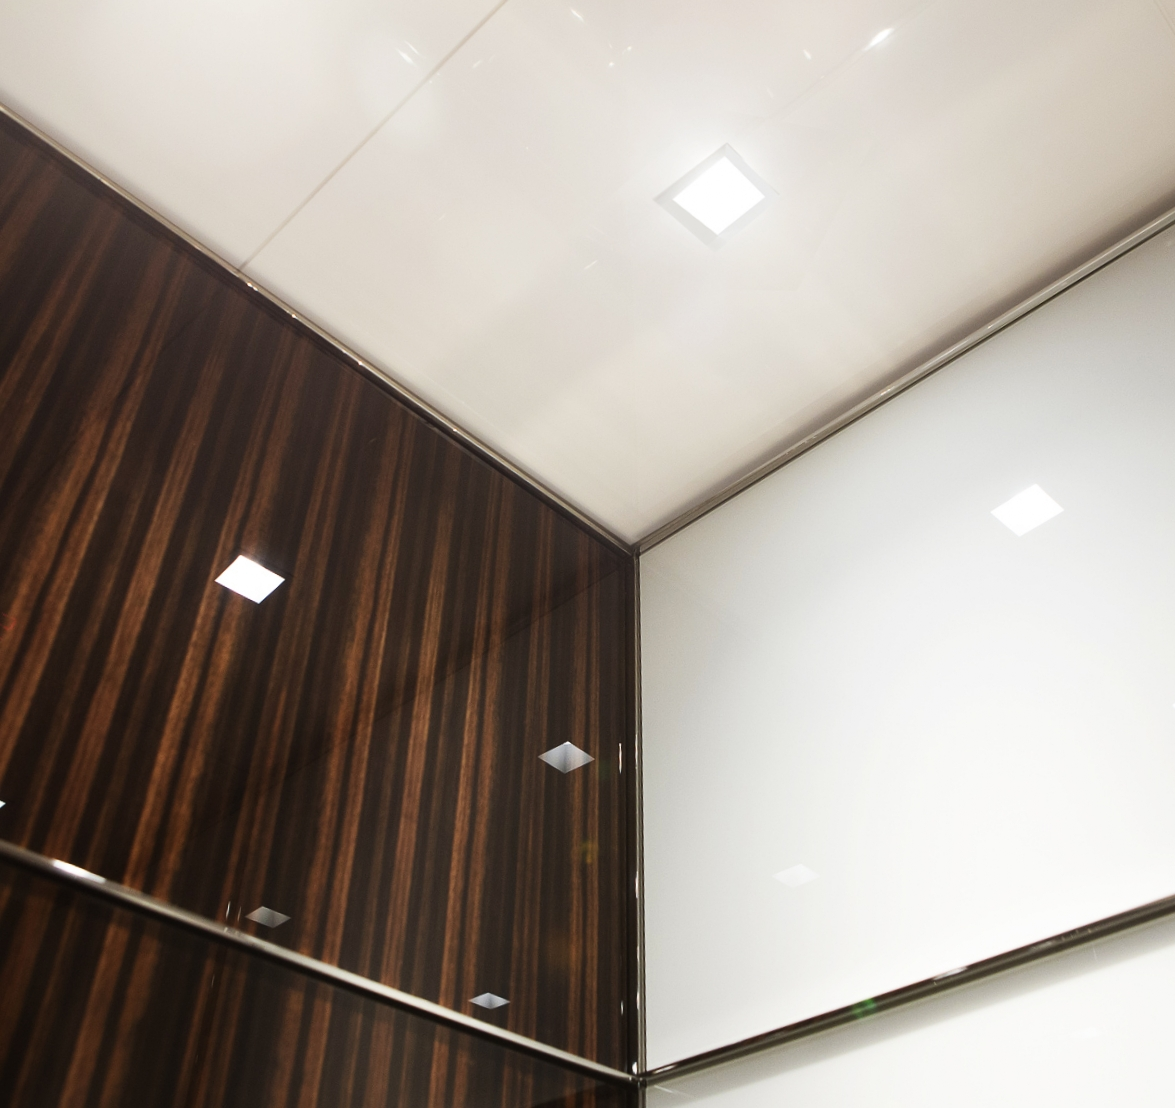 The beautiful ebony wood panels in our 529 5th Avenue cabs are adorned by Elevecture with their 2mm clear  Corning® Gorilla® Glass  panels.   FULL PROJECT GALLERY - 529 5TH AVENUE